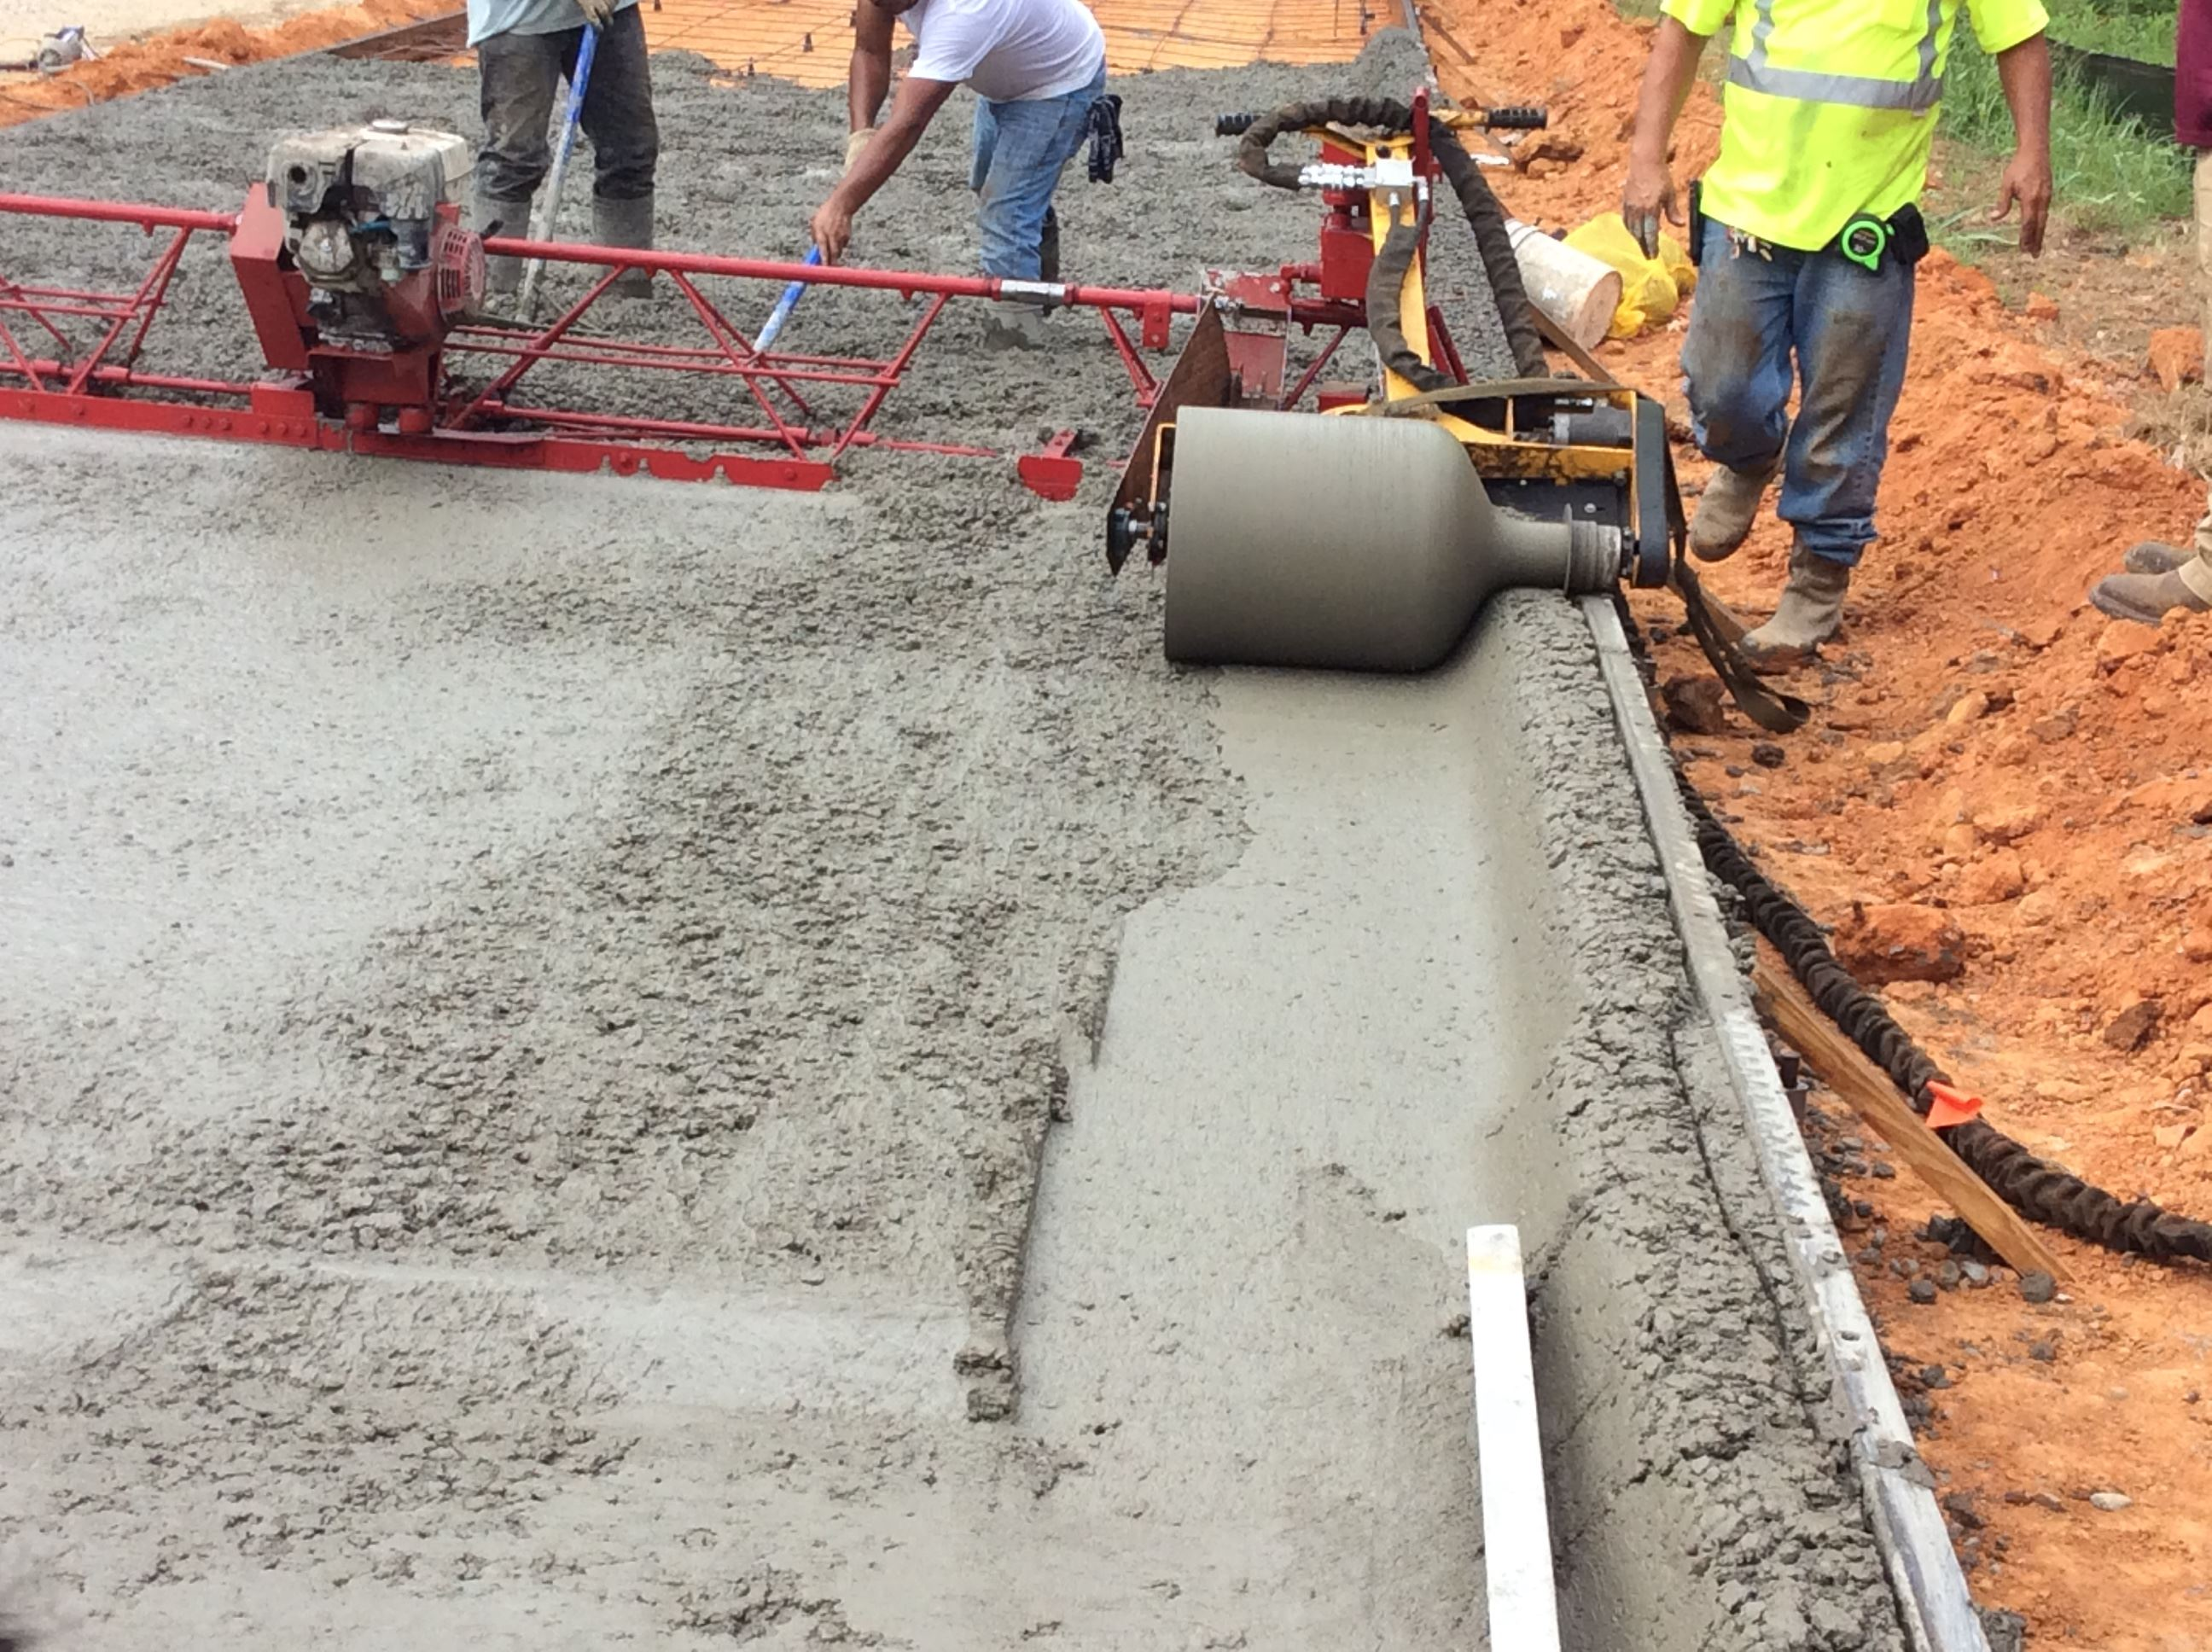 Wet cement being worked on